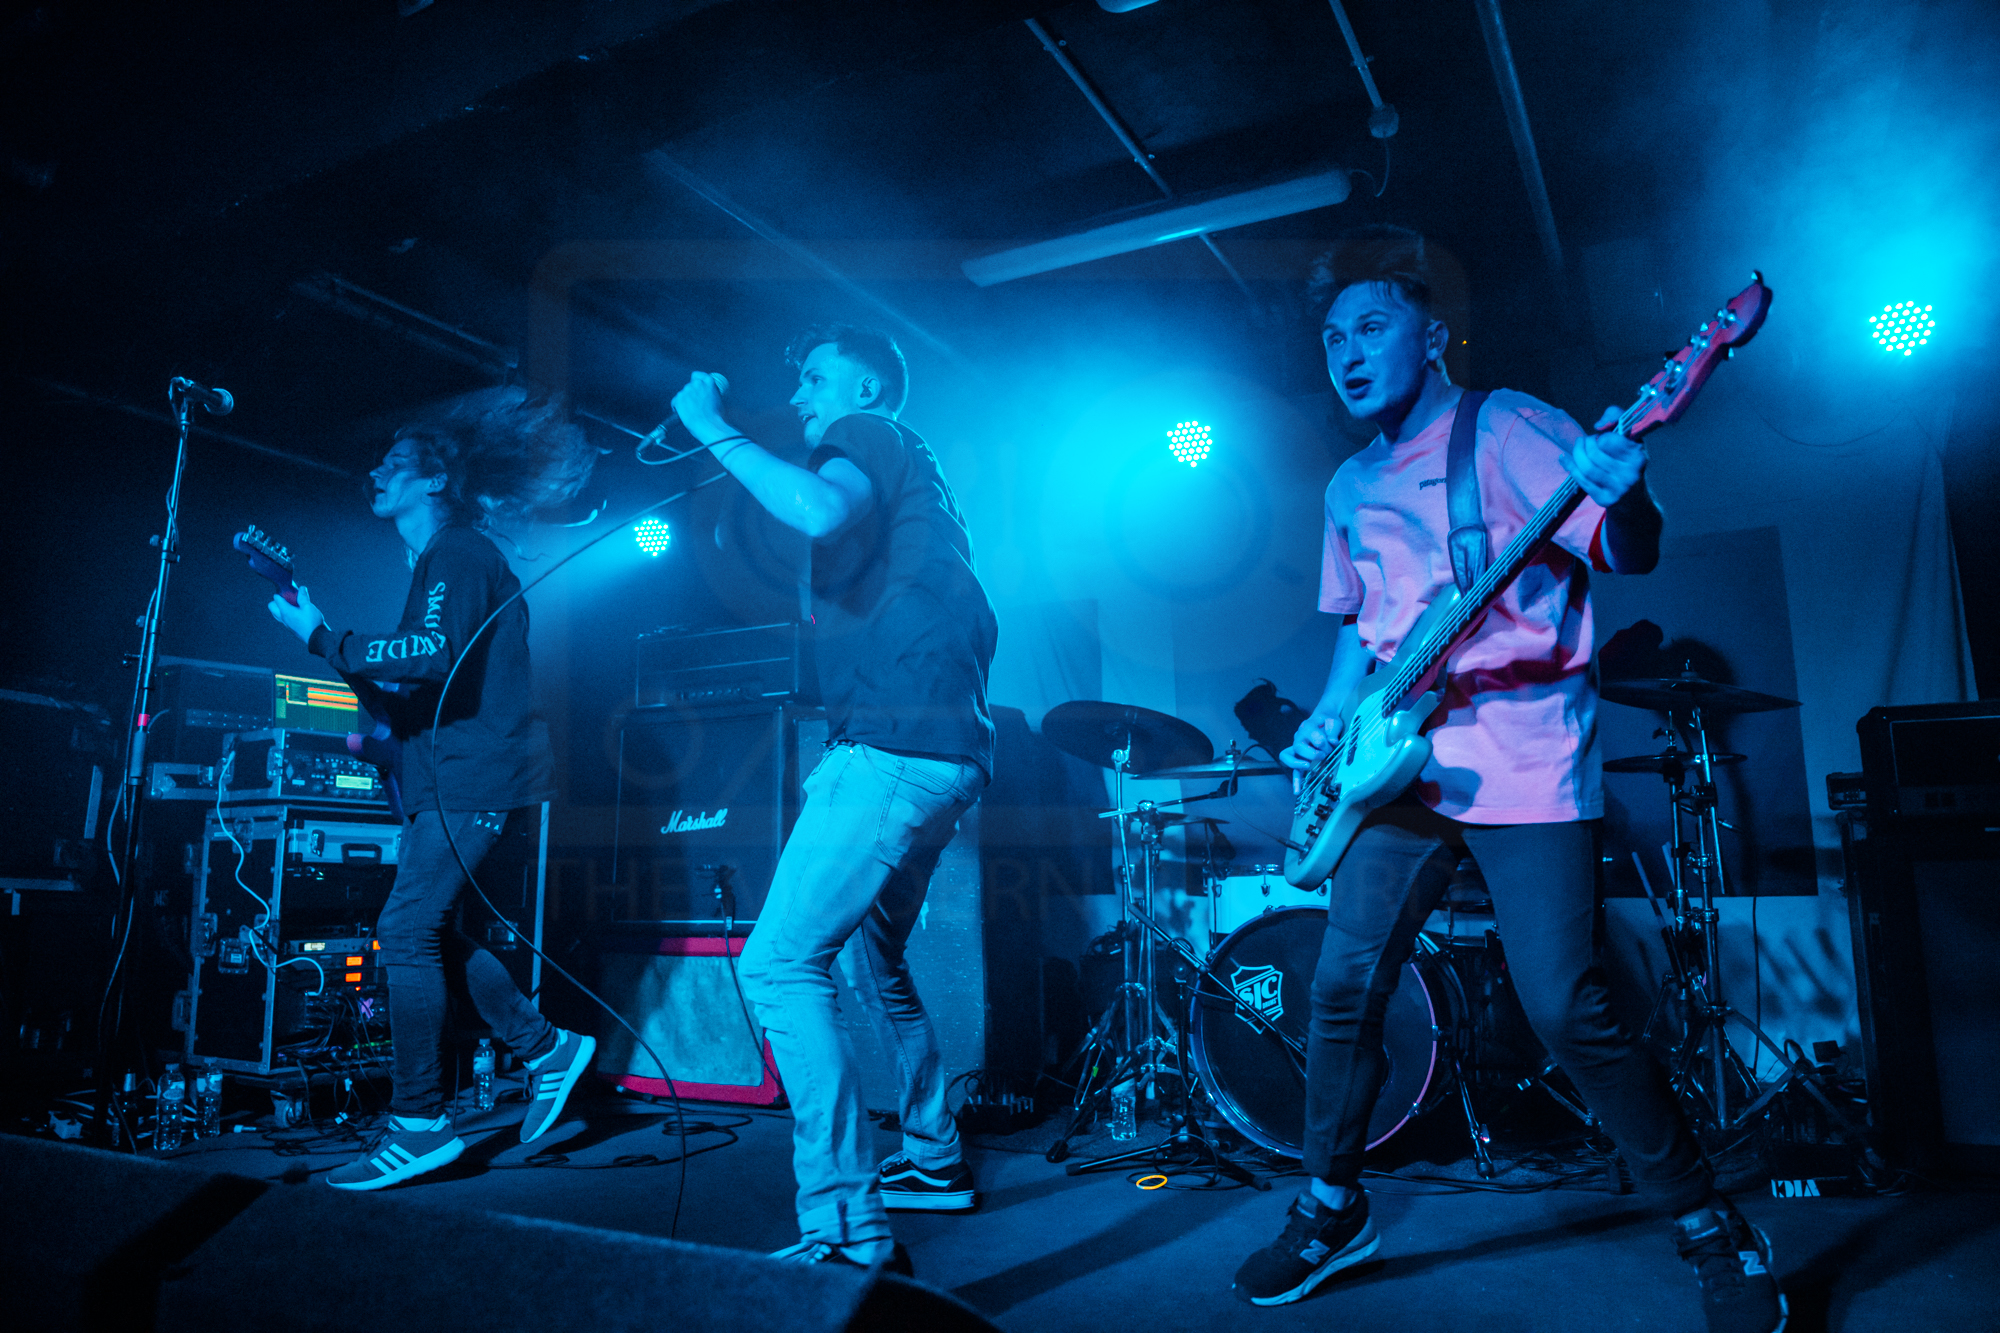 2-Woes-ManchesterAcademy3-26-9-19.jpg